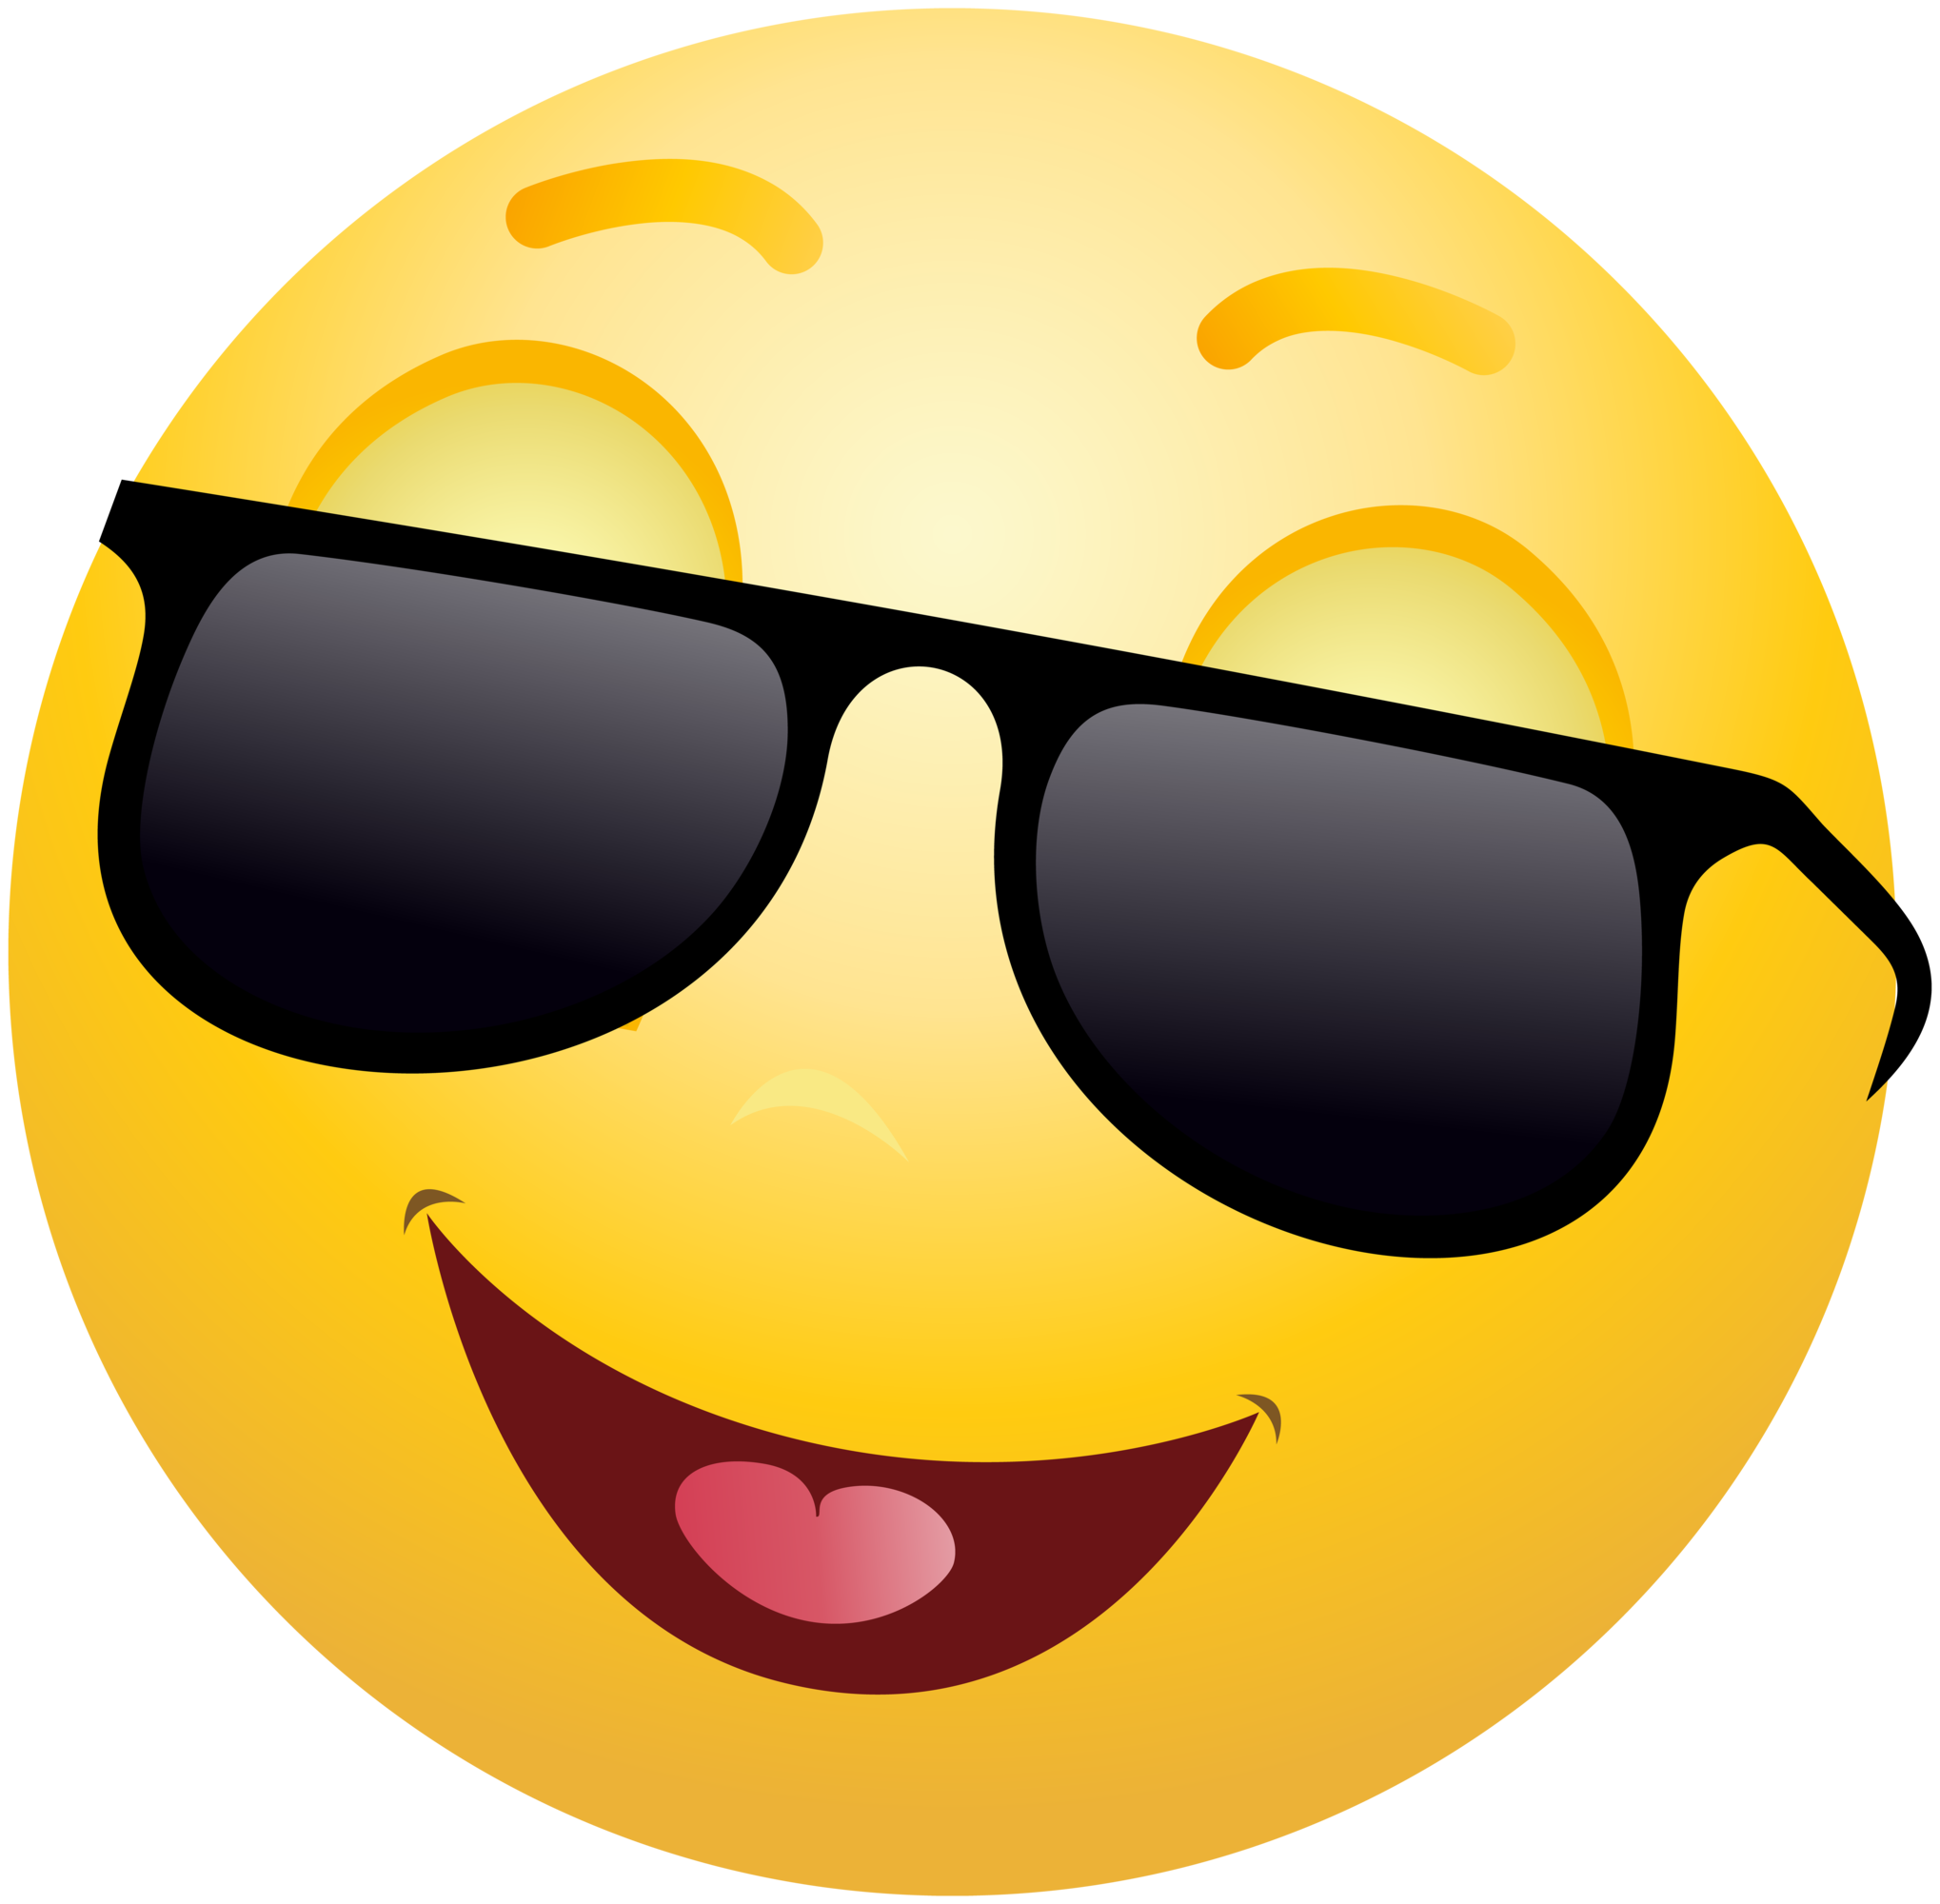 2038x2000 Smiling Emoticon Emoji With Sunglasses Clipart Info